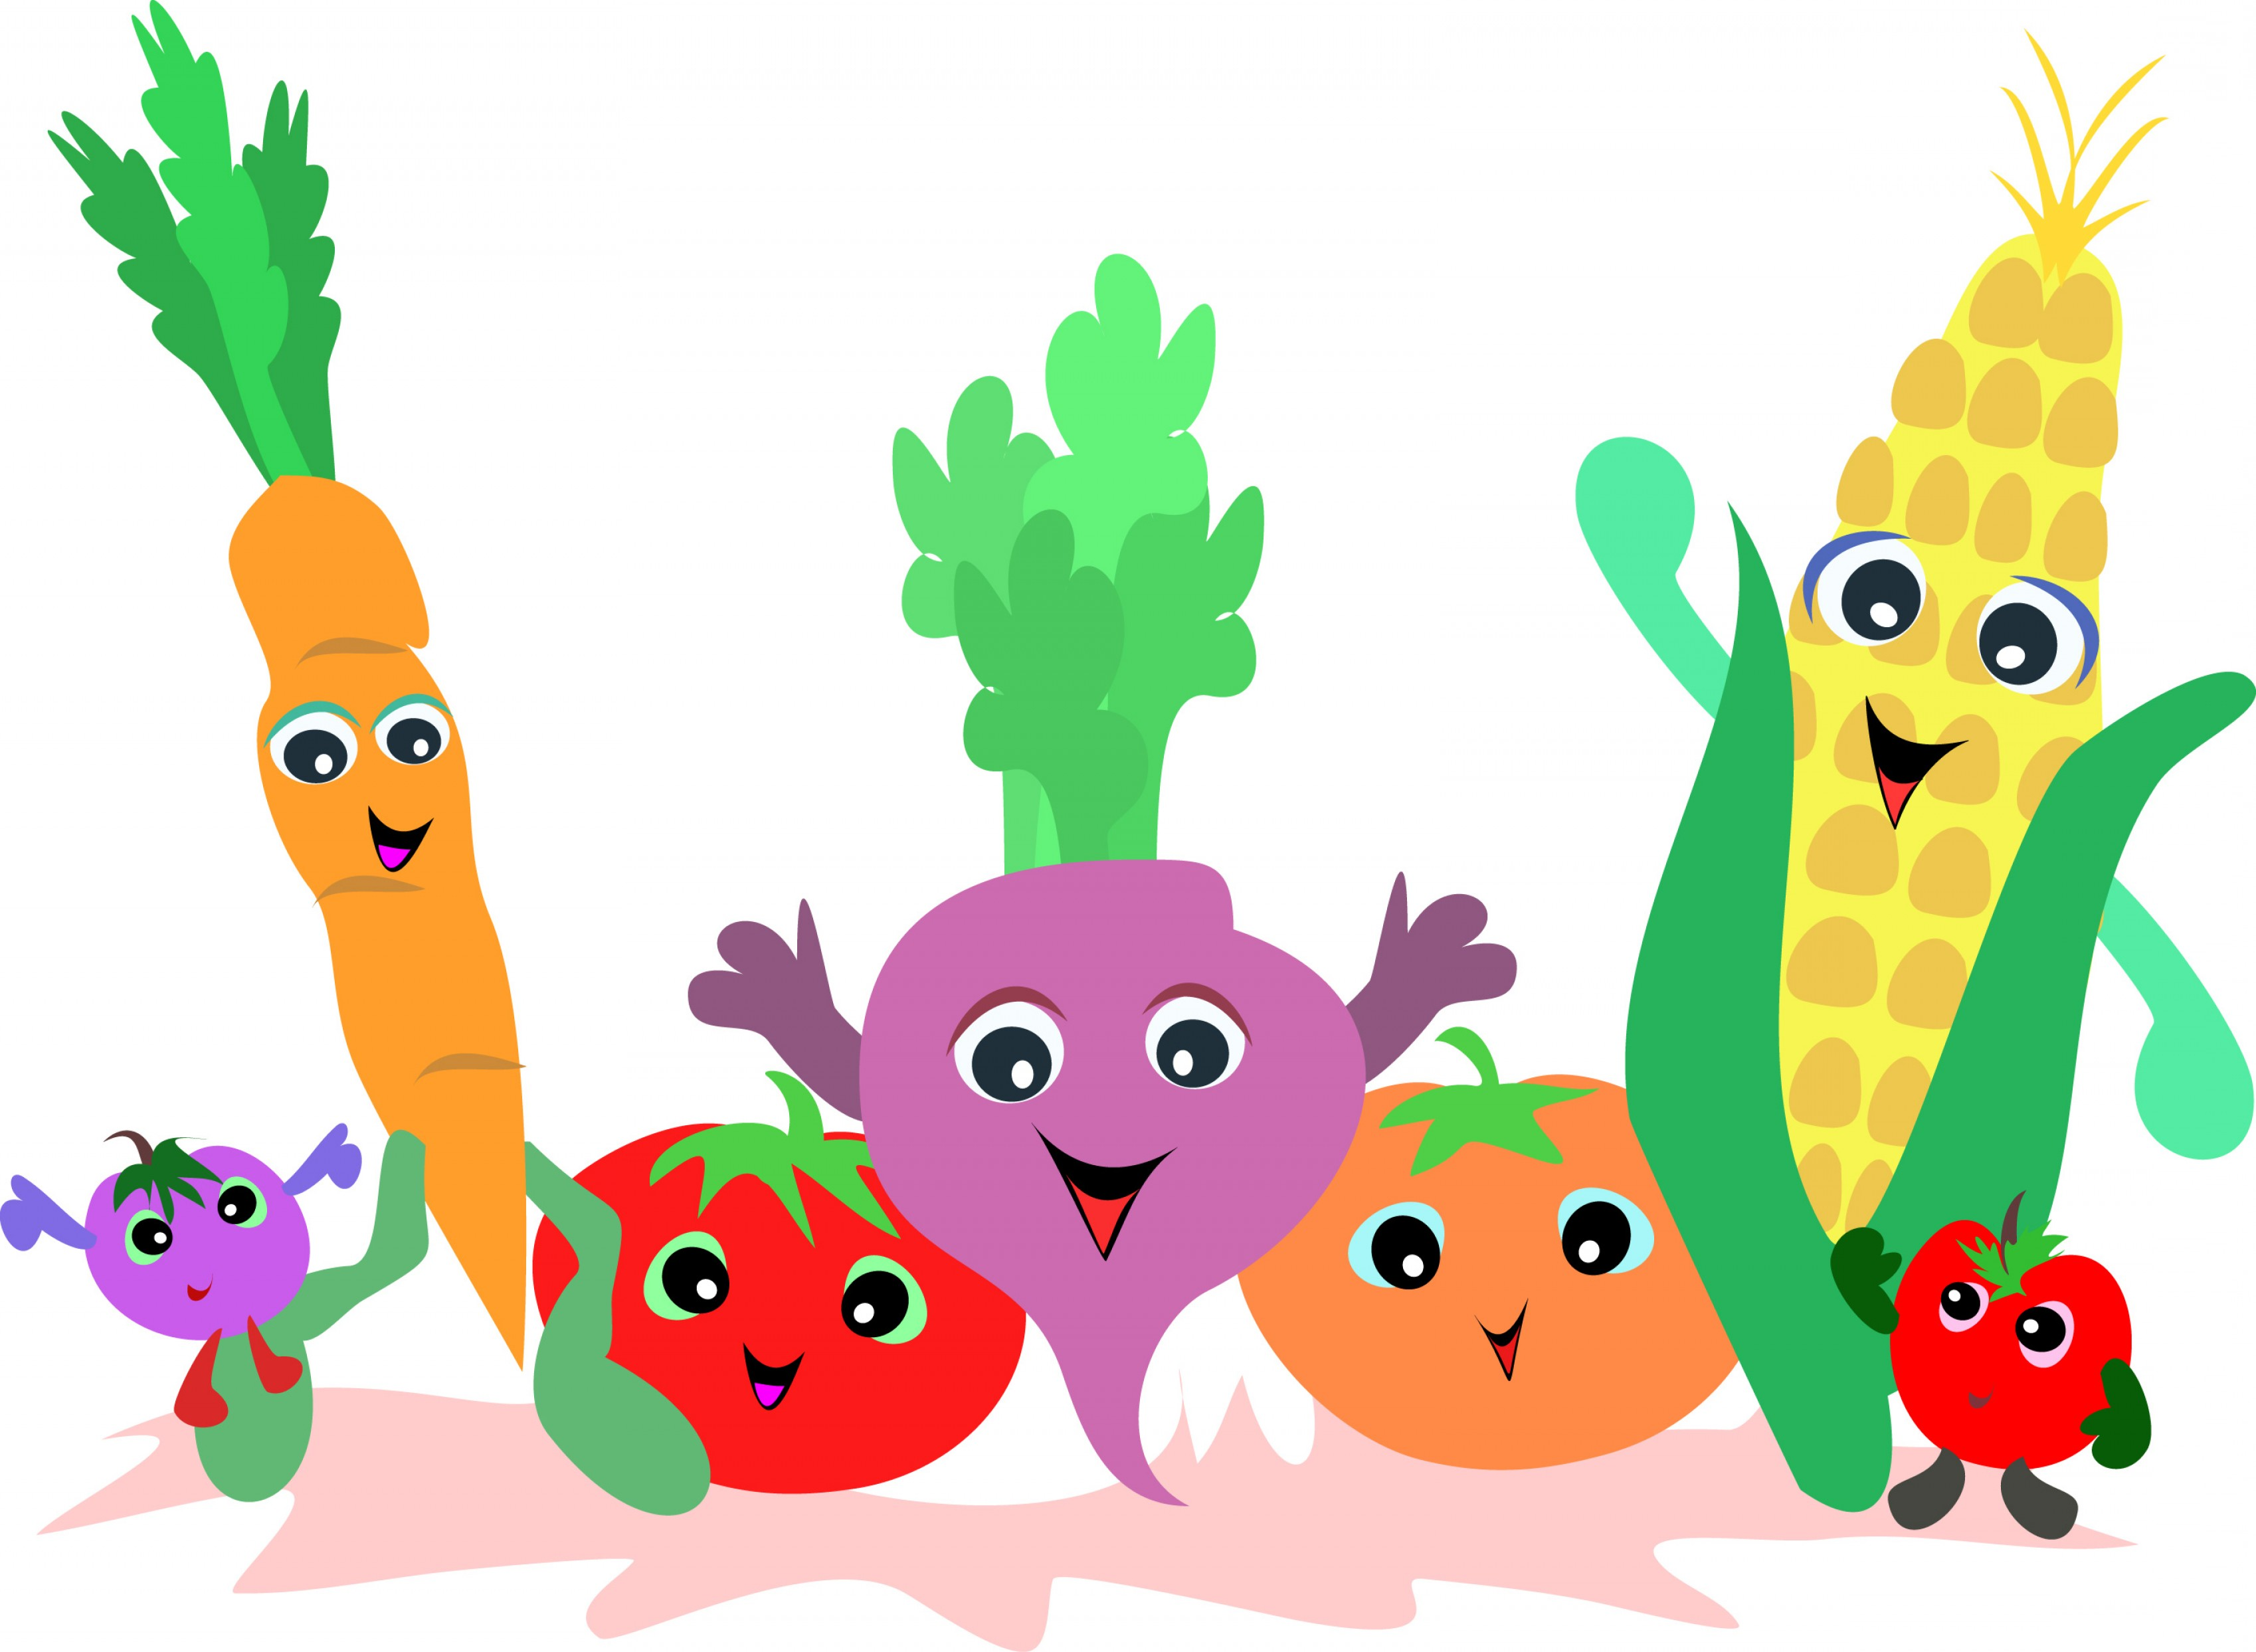 With image gallery hcpr. Vegetables clipart veg